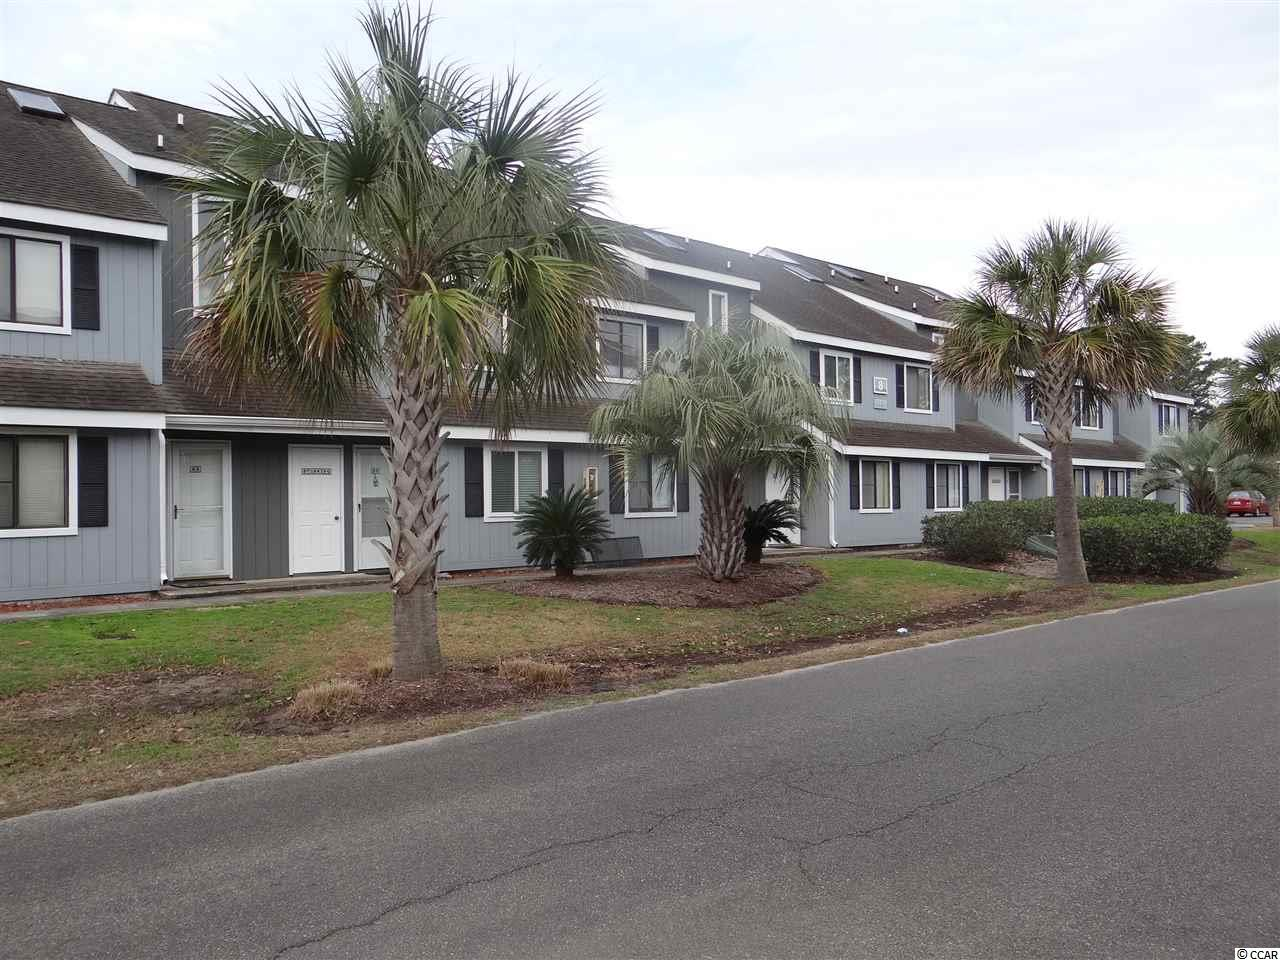 One Bedroom one bath condo in Golf Colony Resort of Deerfield Plantation in Surfside Beach, SC. Perfect for weekend getaways to the beach or a great investimet property to lease for income. Can be leased long term or setup for vacation rental. Centrally located in the middle of the Grand Strand of South Carolina just 1.5 miles to the Atlantic Ocean. Close to shopping, restaurants and night life. Large balcony overlooks the pool. Ask your real estate agent to show this great condo to you today.